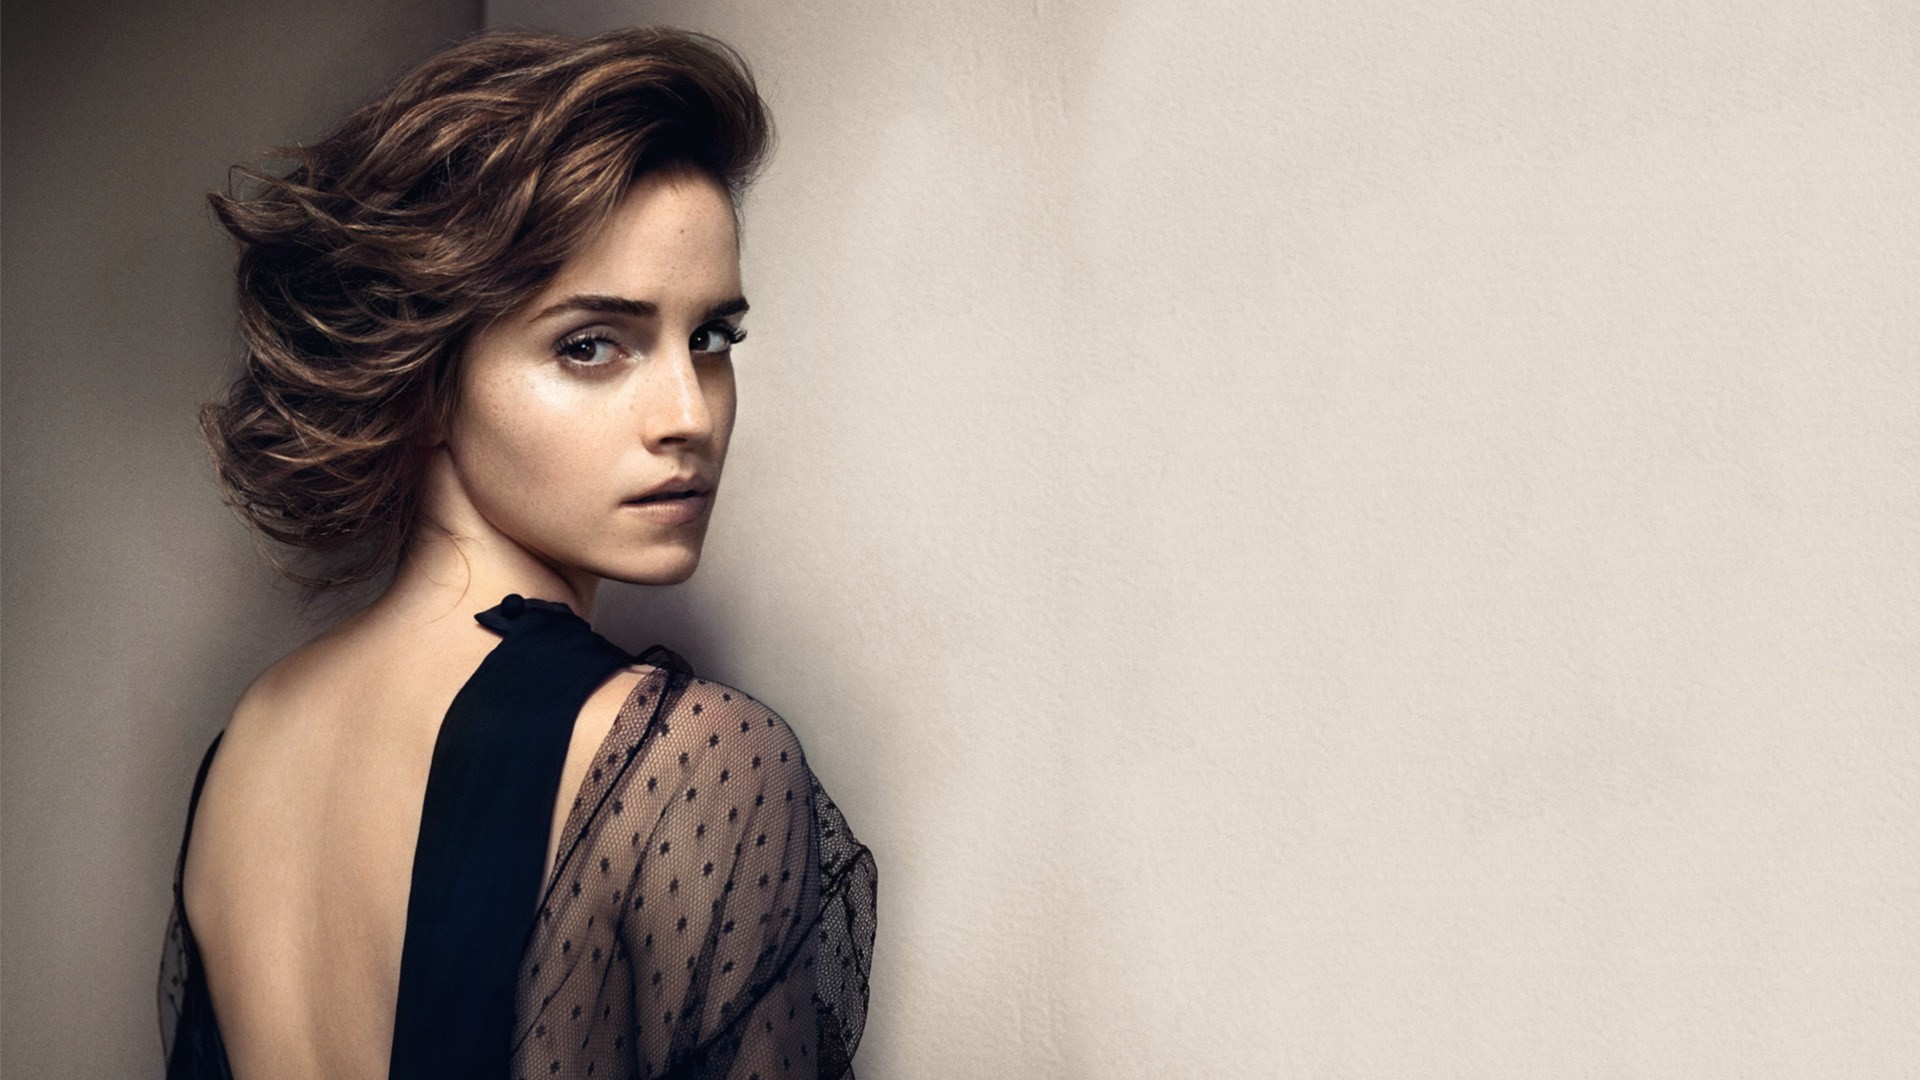 emma watson hd wallpapers 1080p (75+ images)